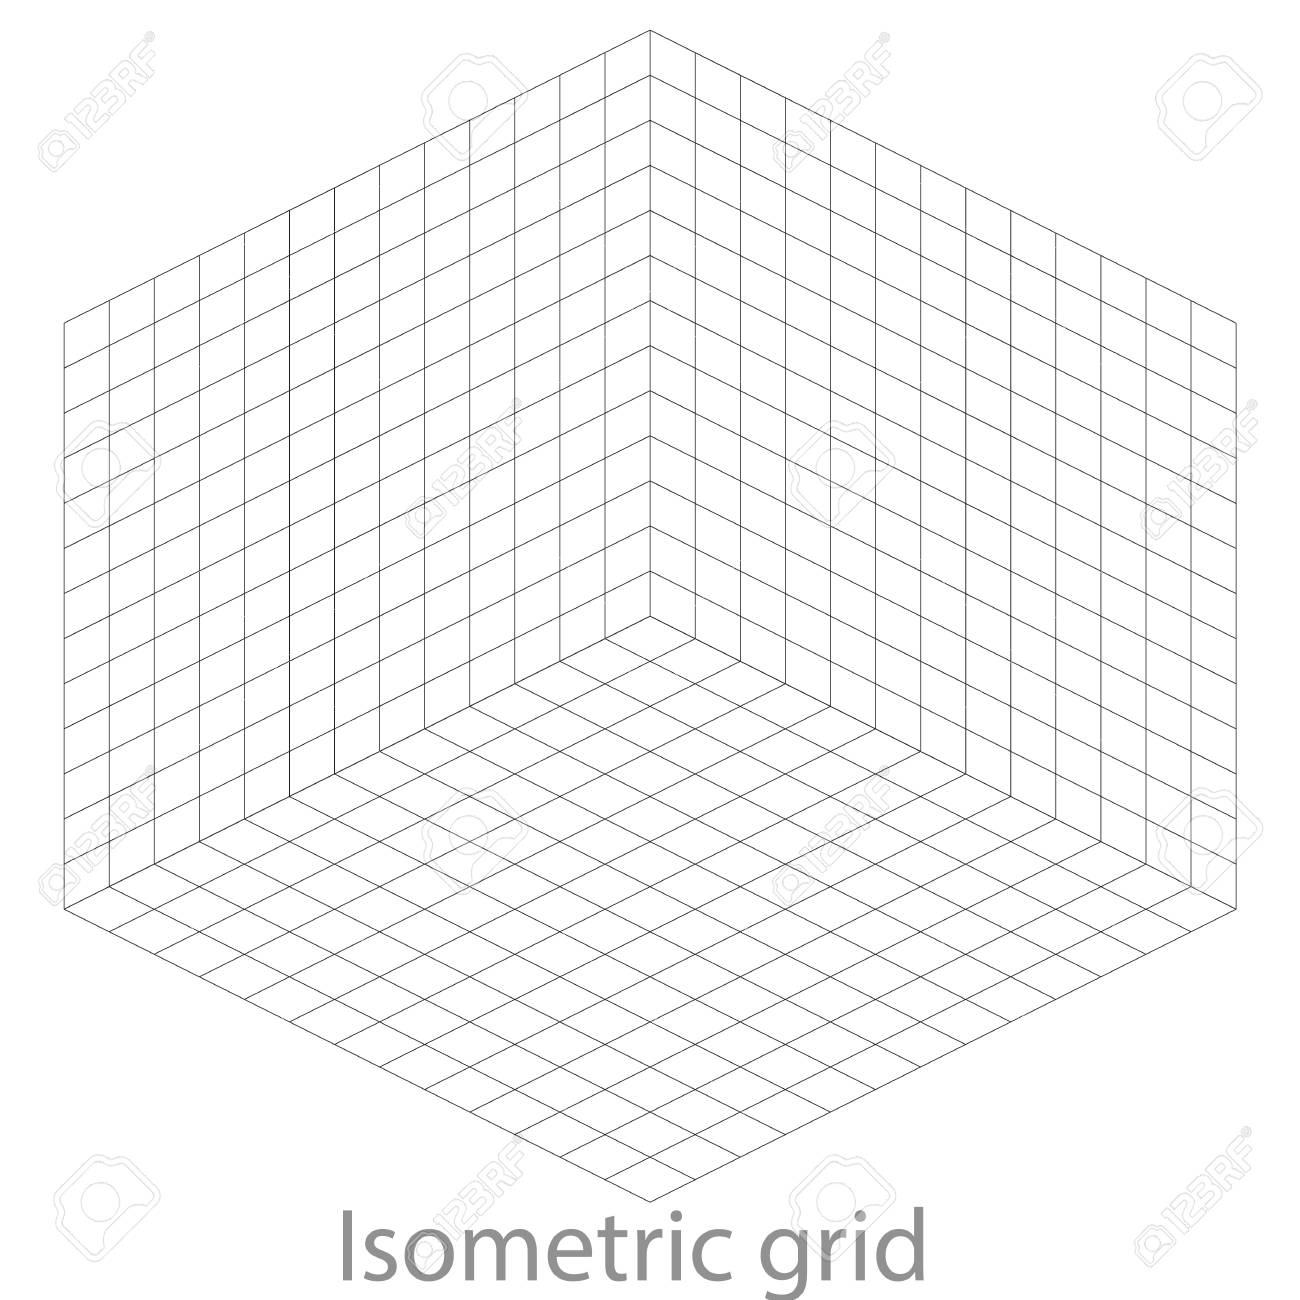 Template Isometric Grid Royalty Free Cliparts, Vectors, And Stock ...